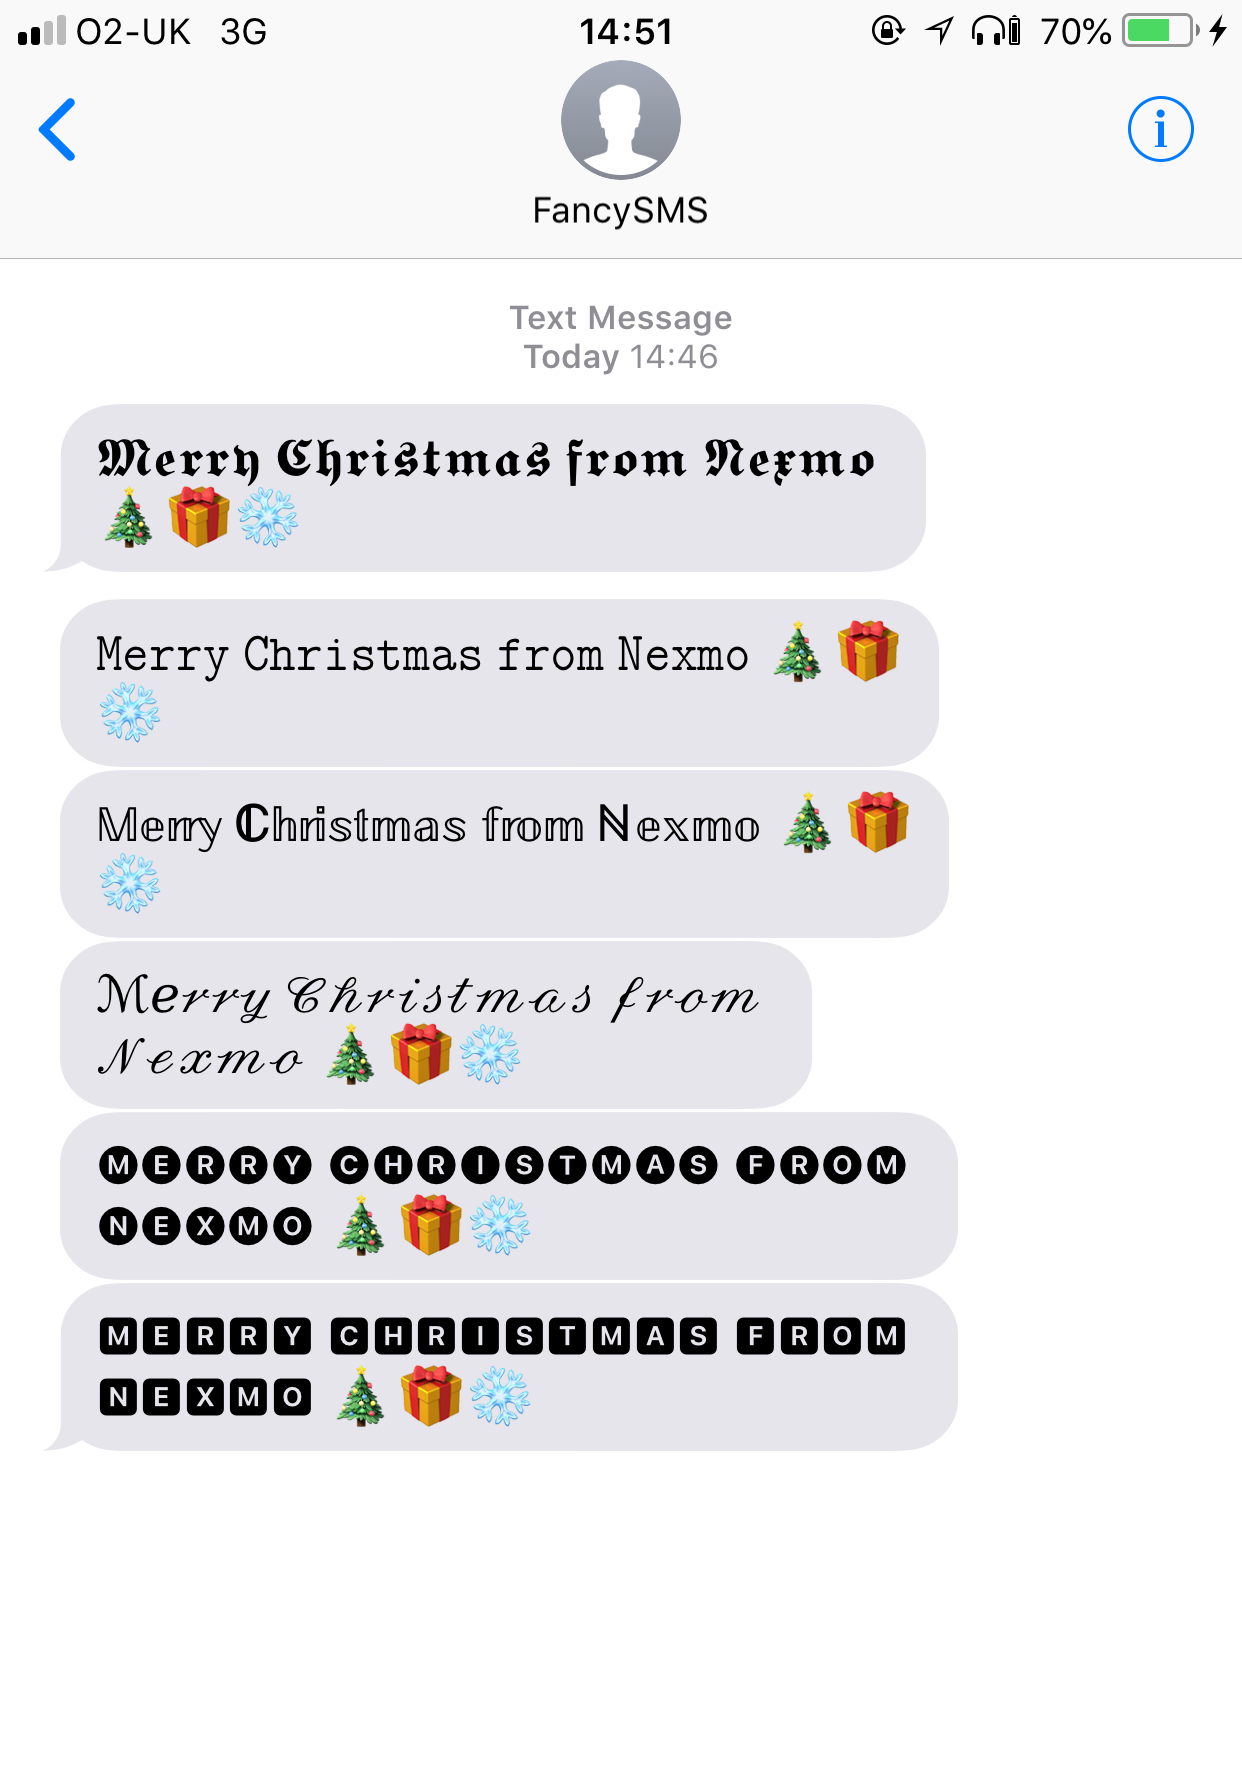 Screeenshot of SMS messages with custom fonts